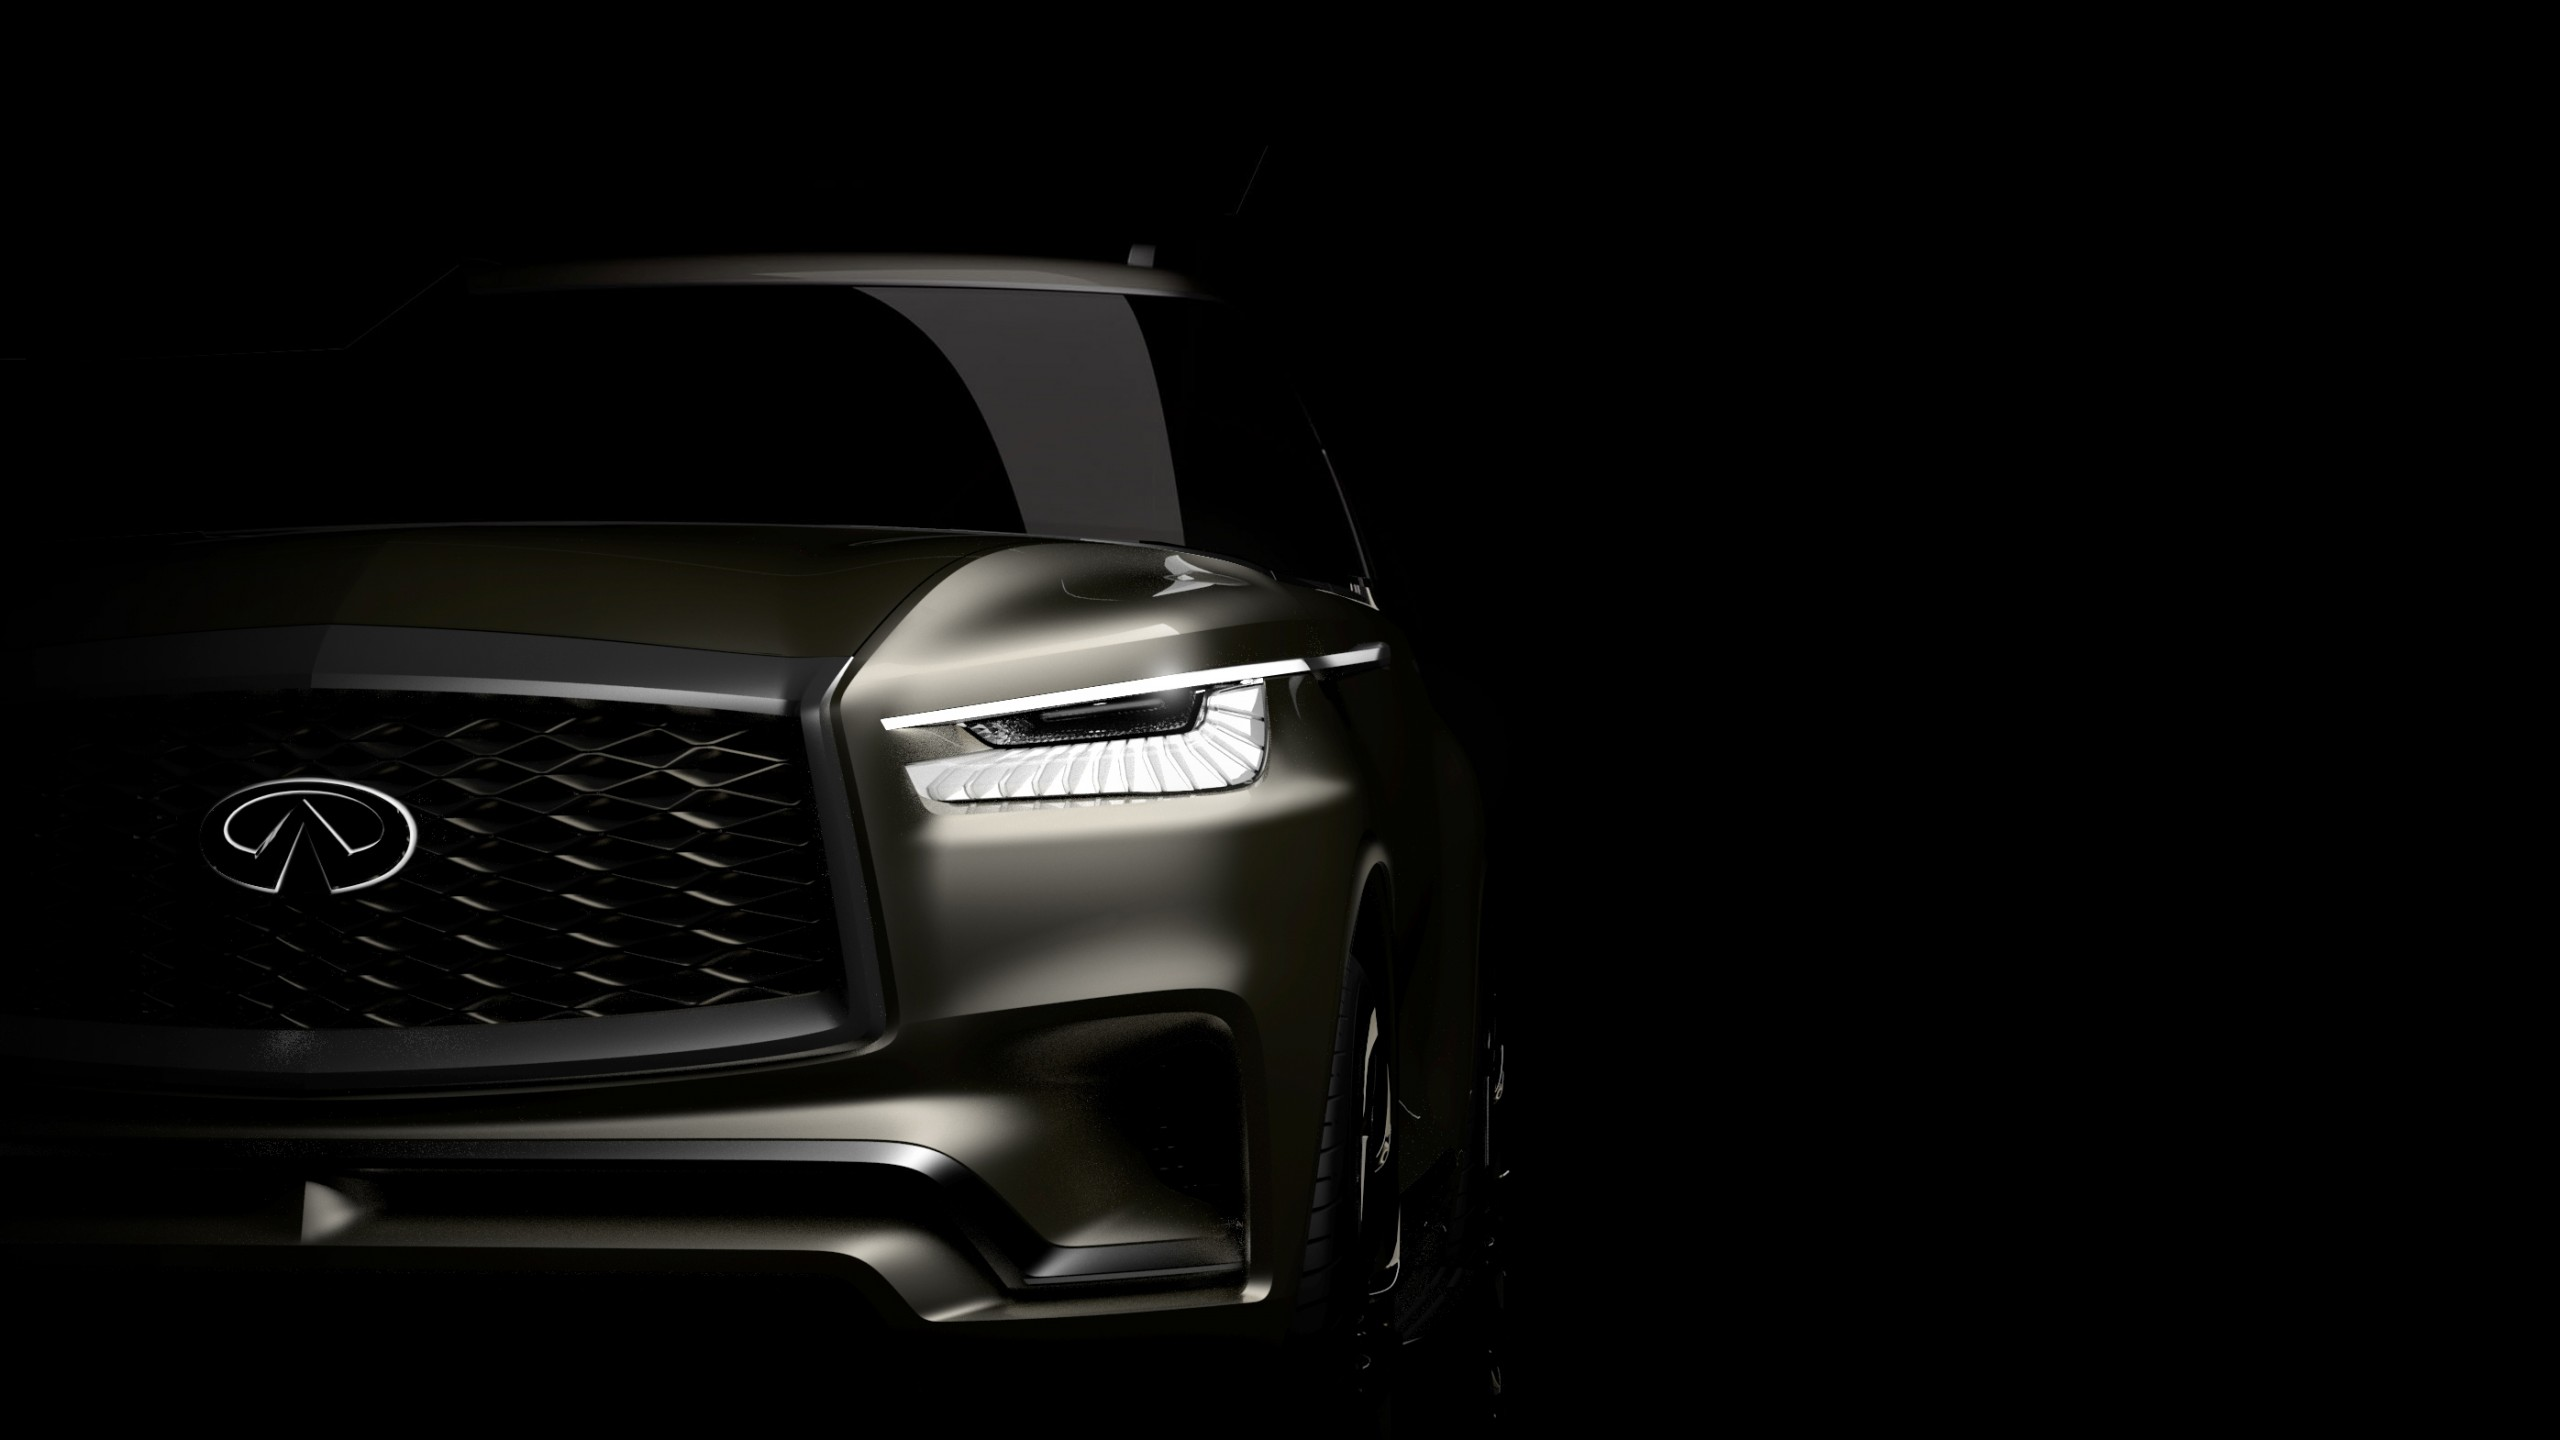 2560x1440 - Infiniti QX80 Wallpapers 24